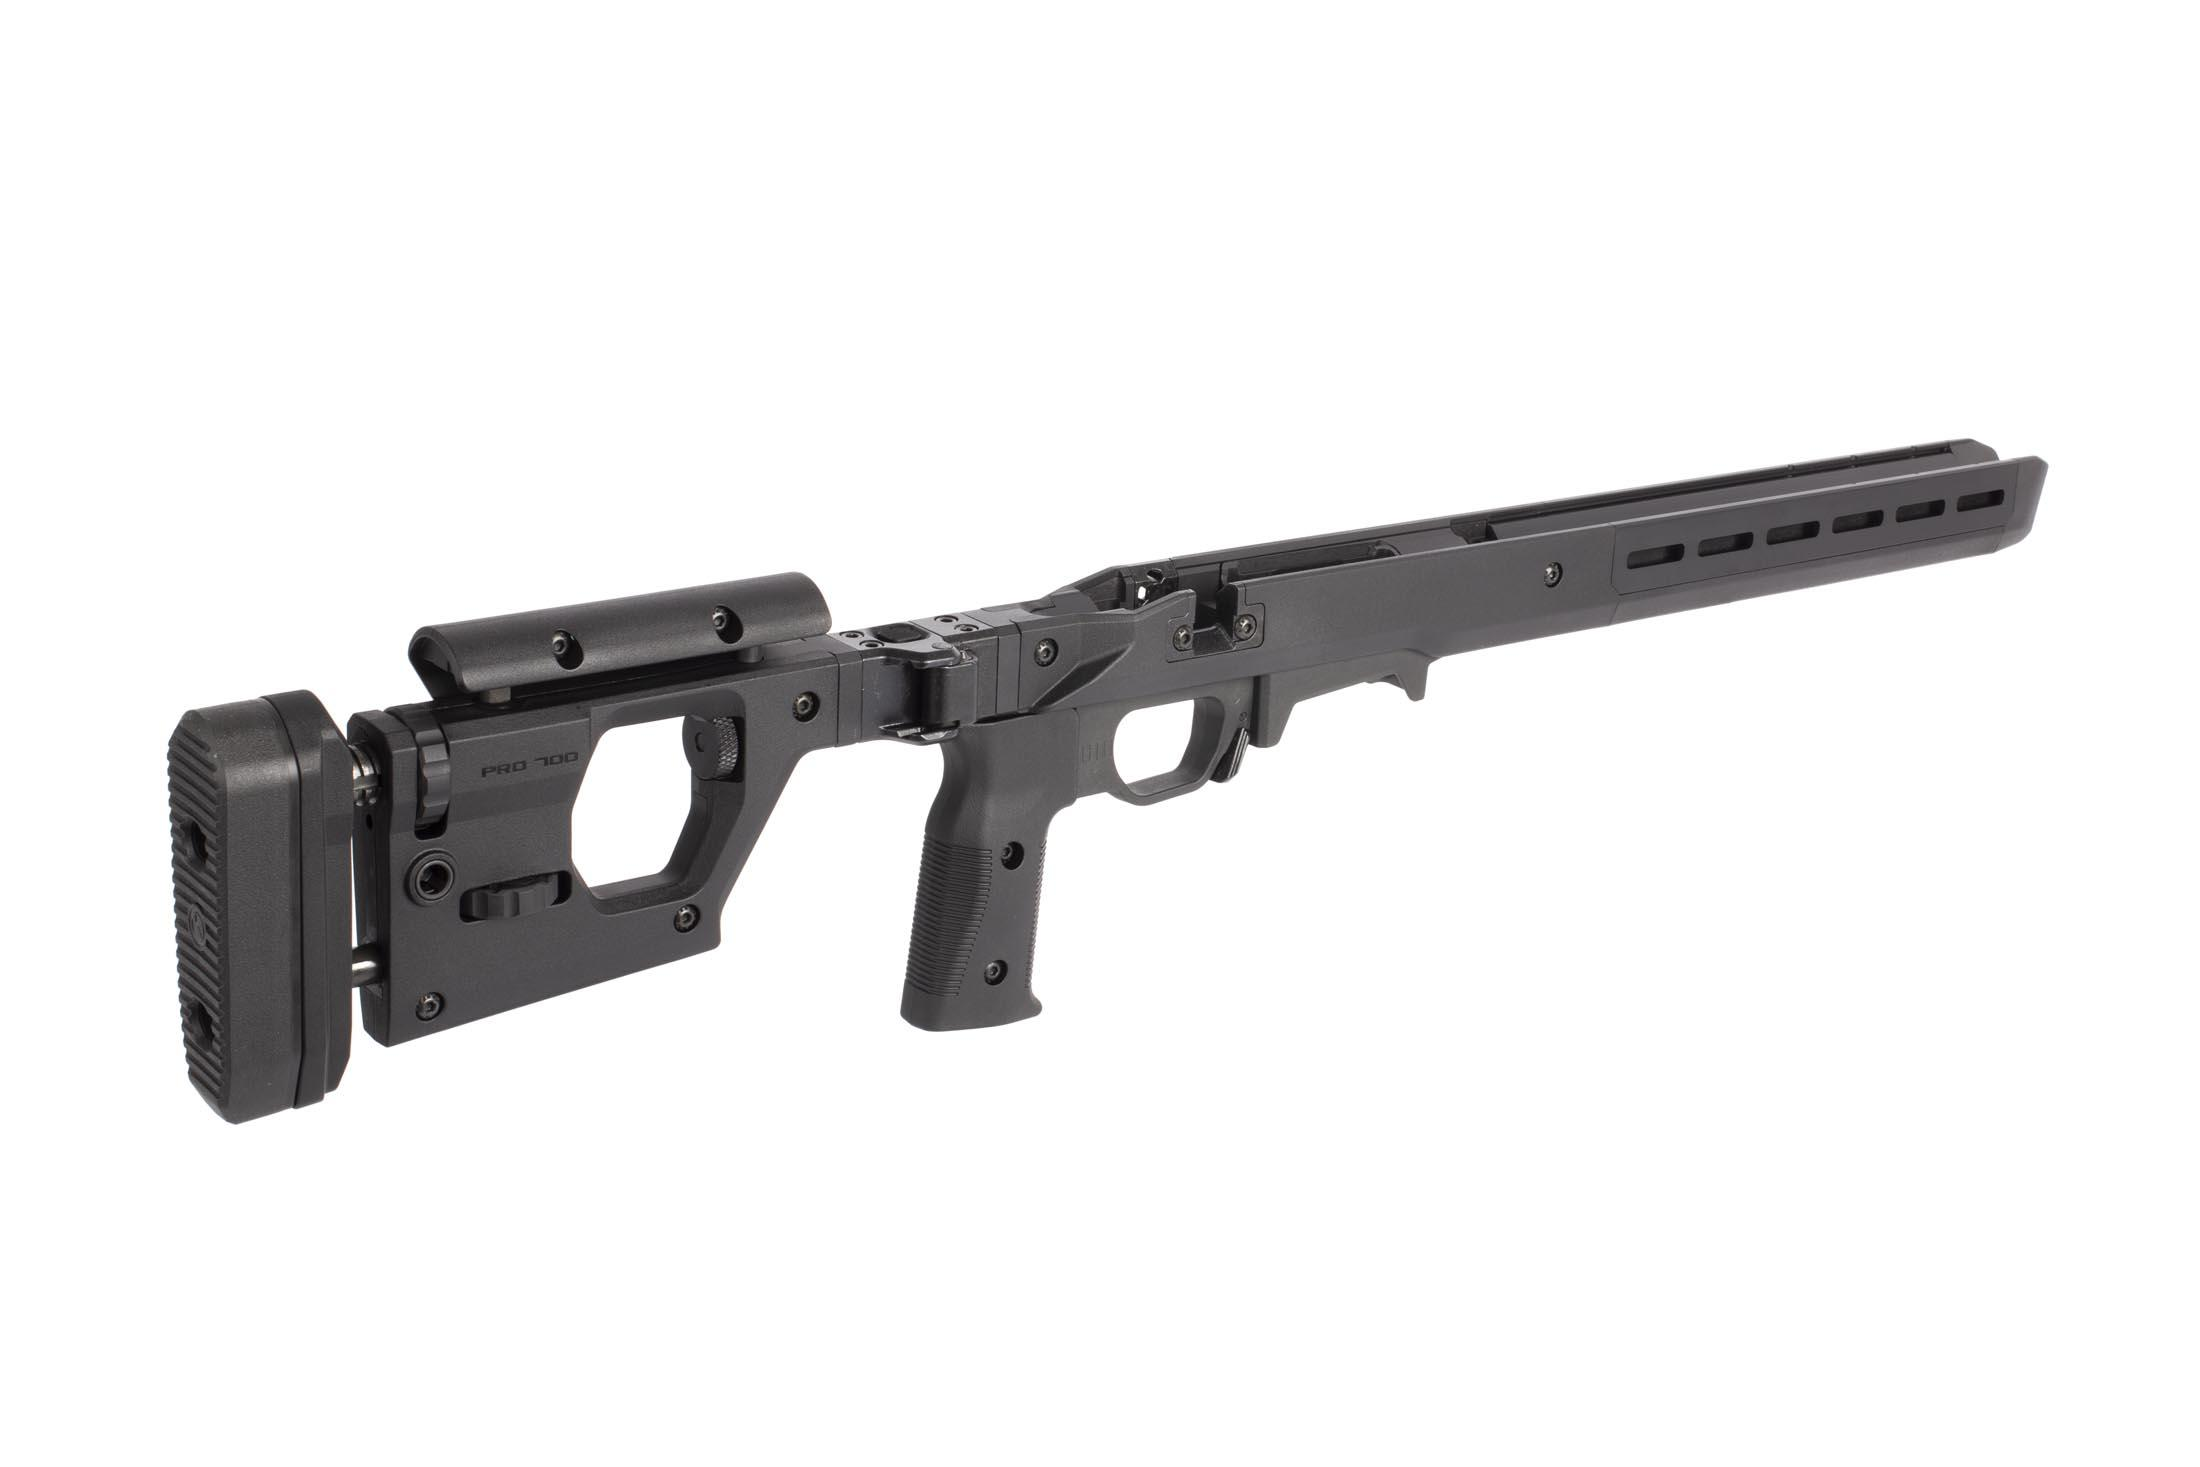 Magpul Pro 700 short action rifle chassis has an adjustable vertical pistol pistol grip and can be configured left or right